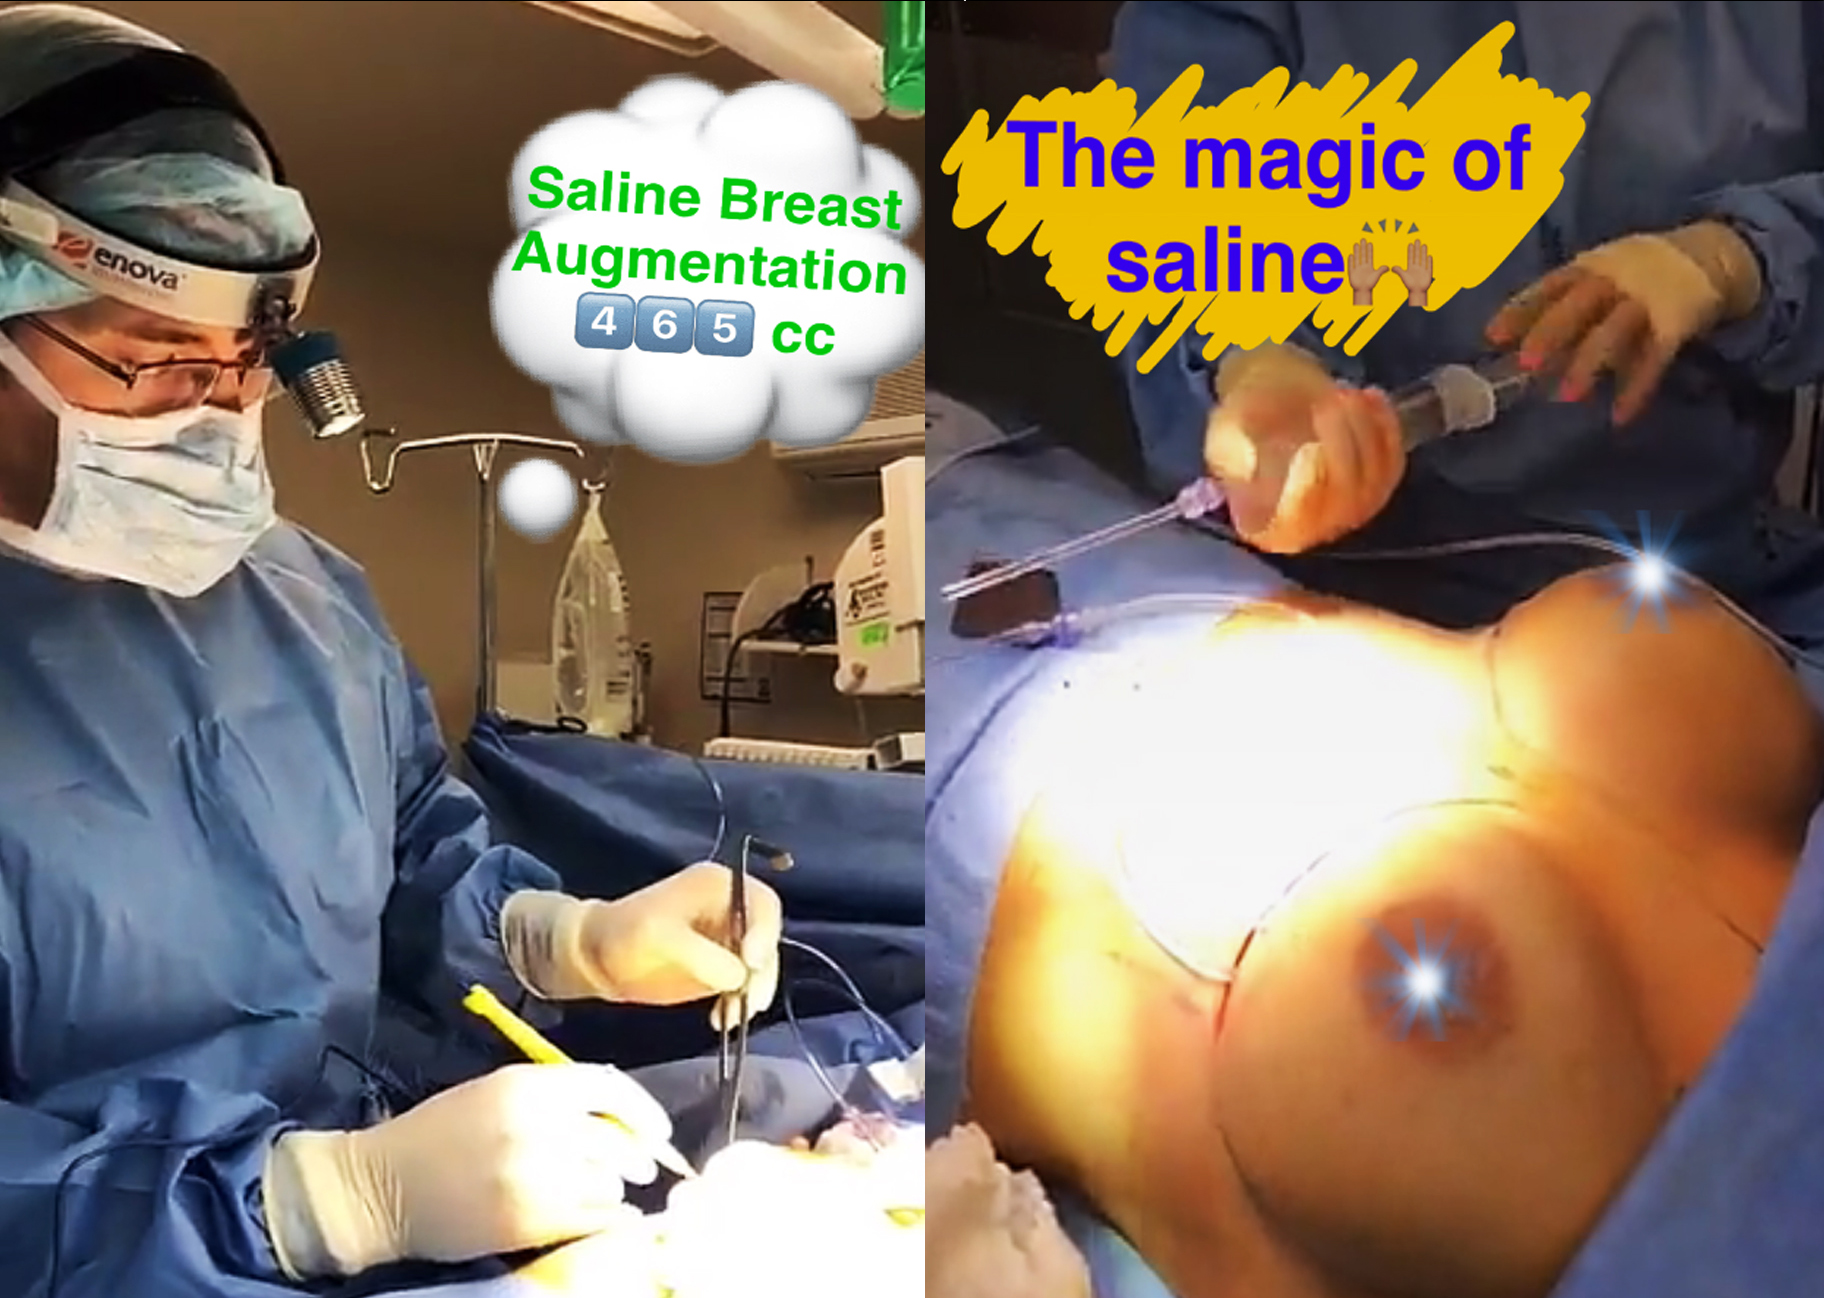 SALINE Implant Exchange